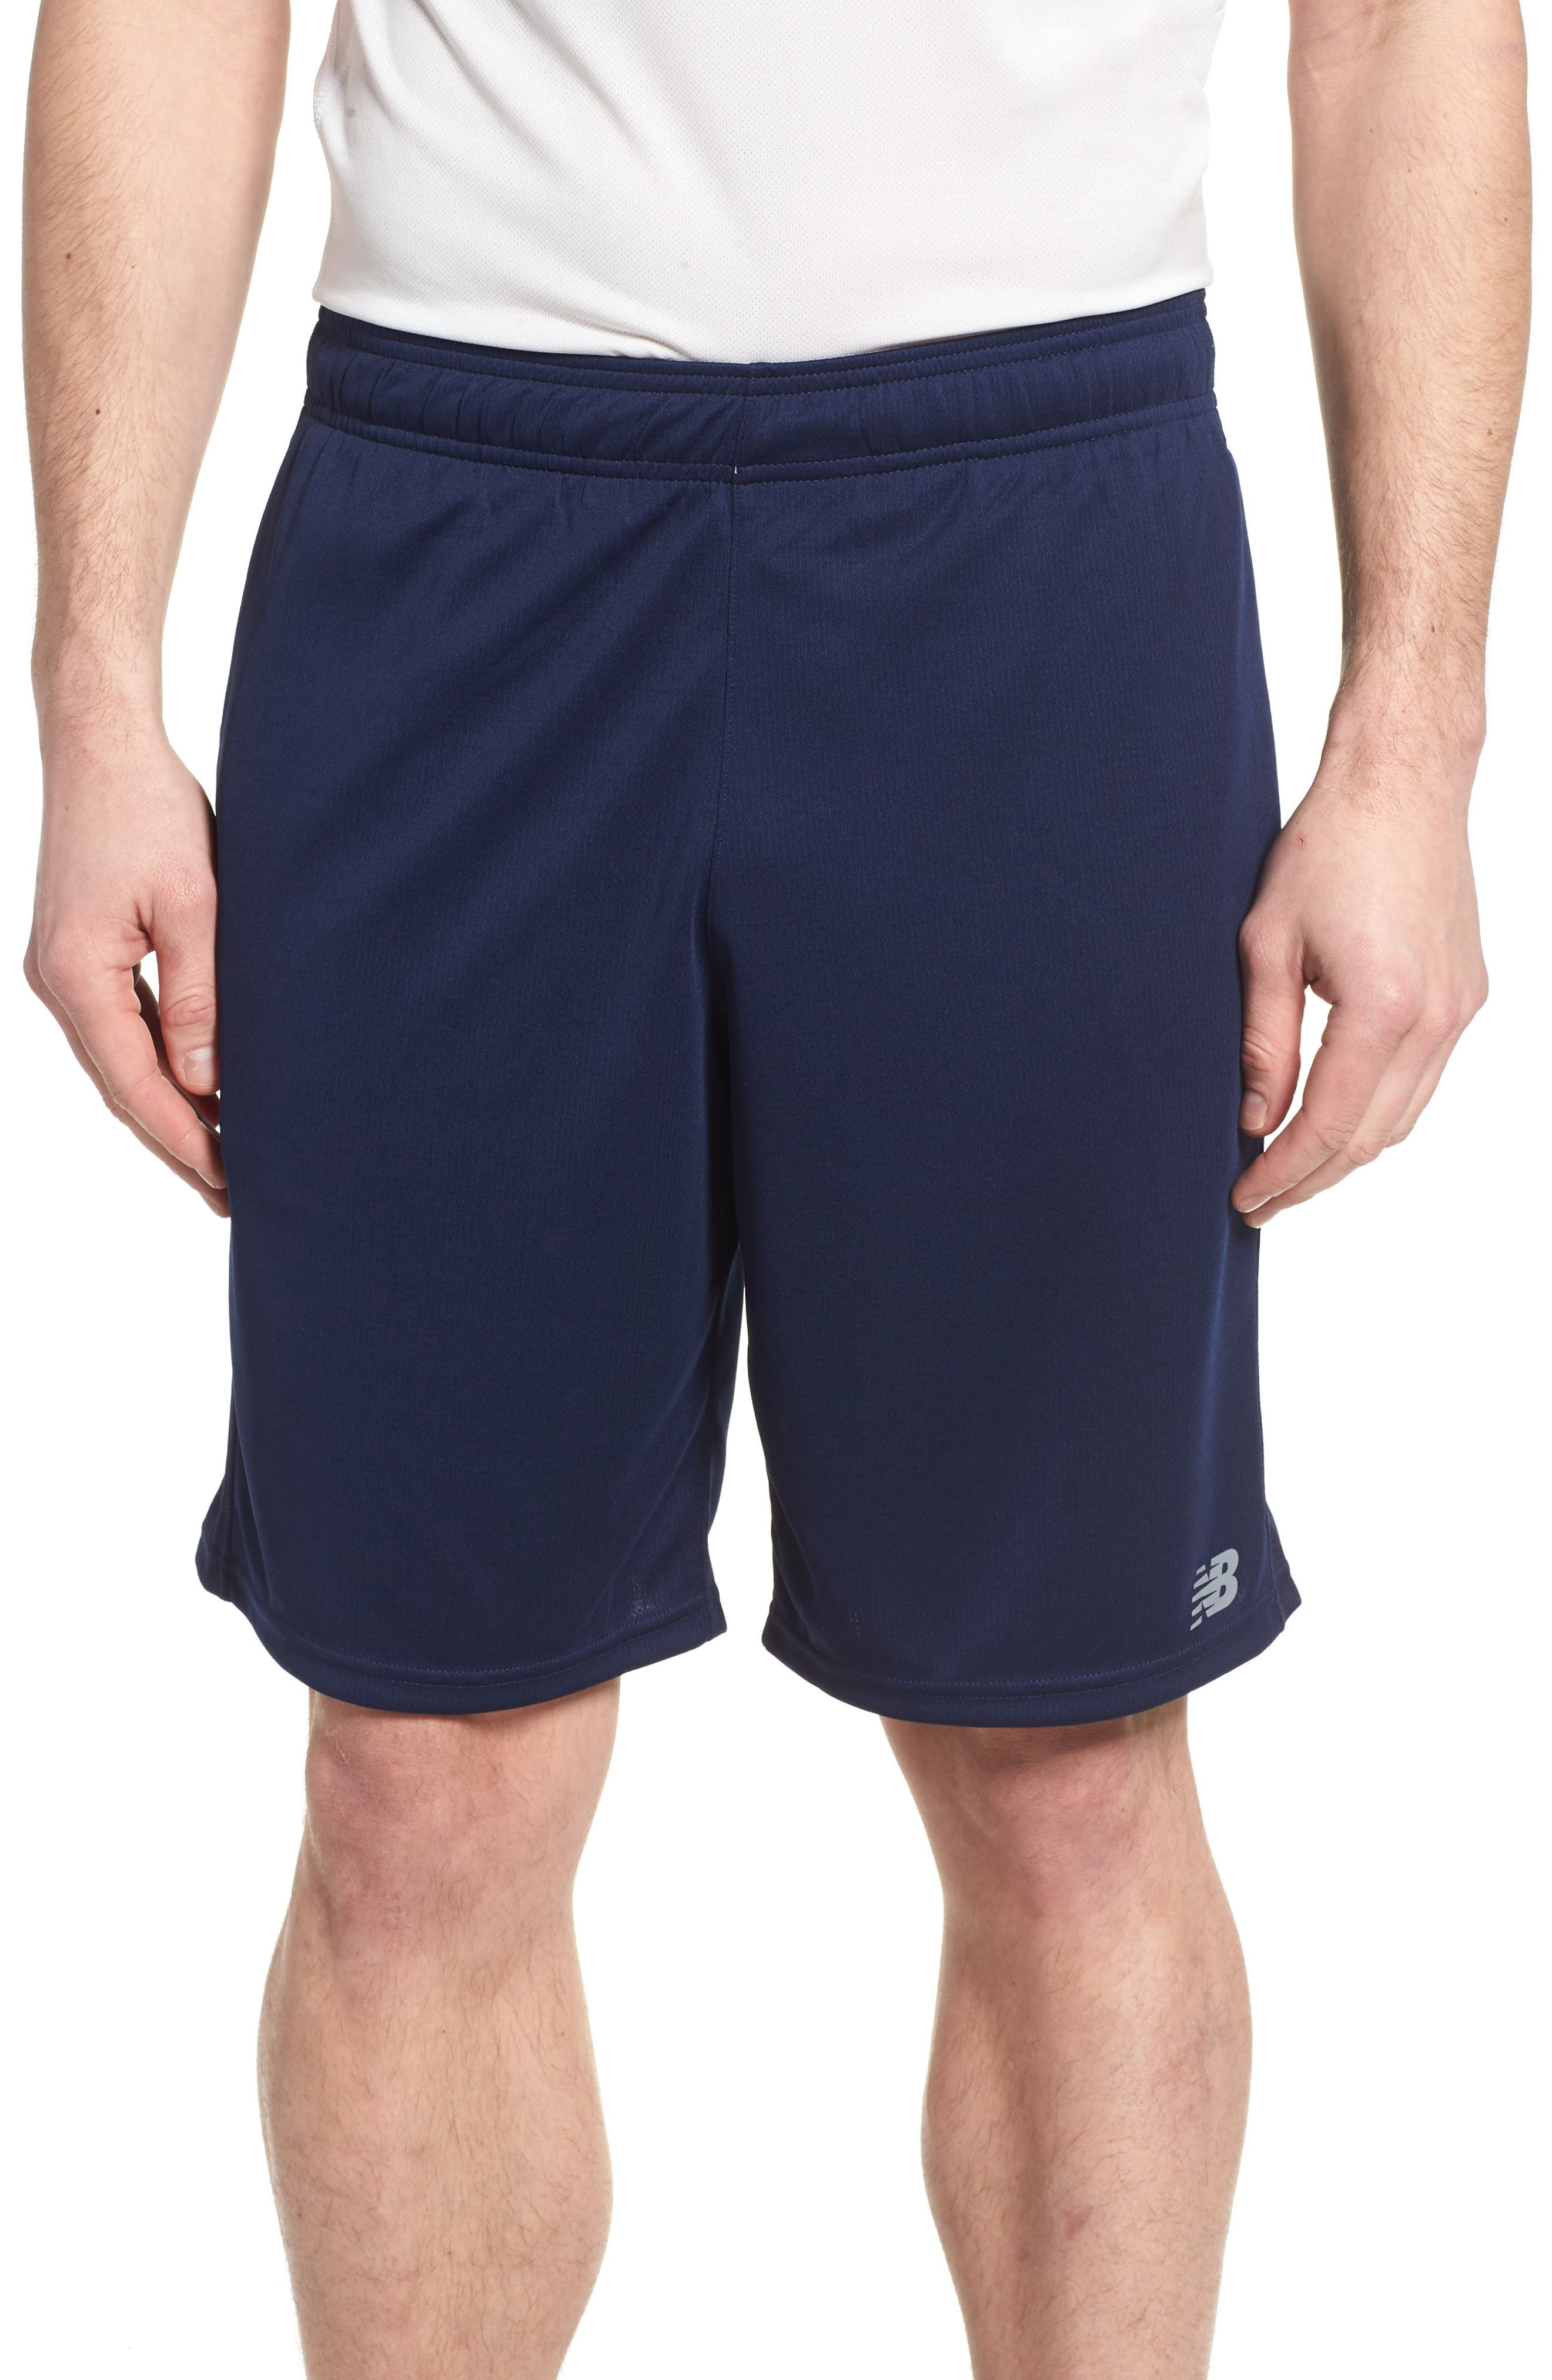 New Balance Versa Shorts, Blue